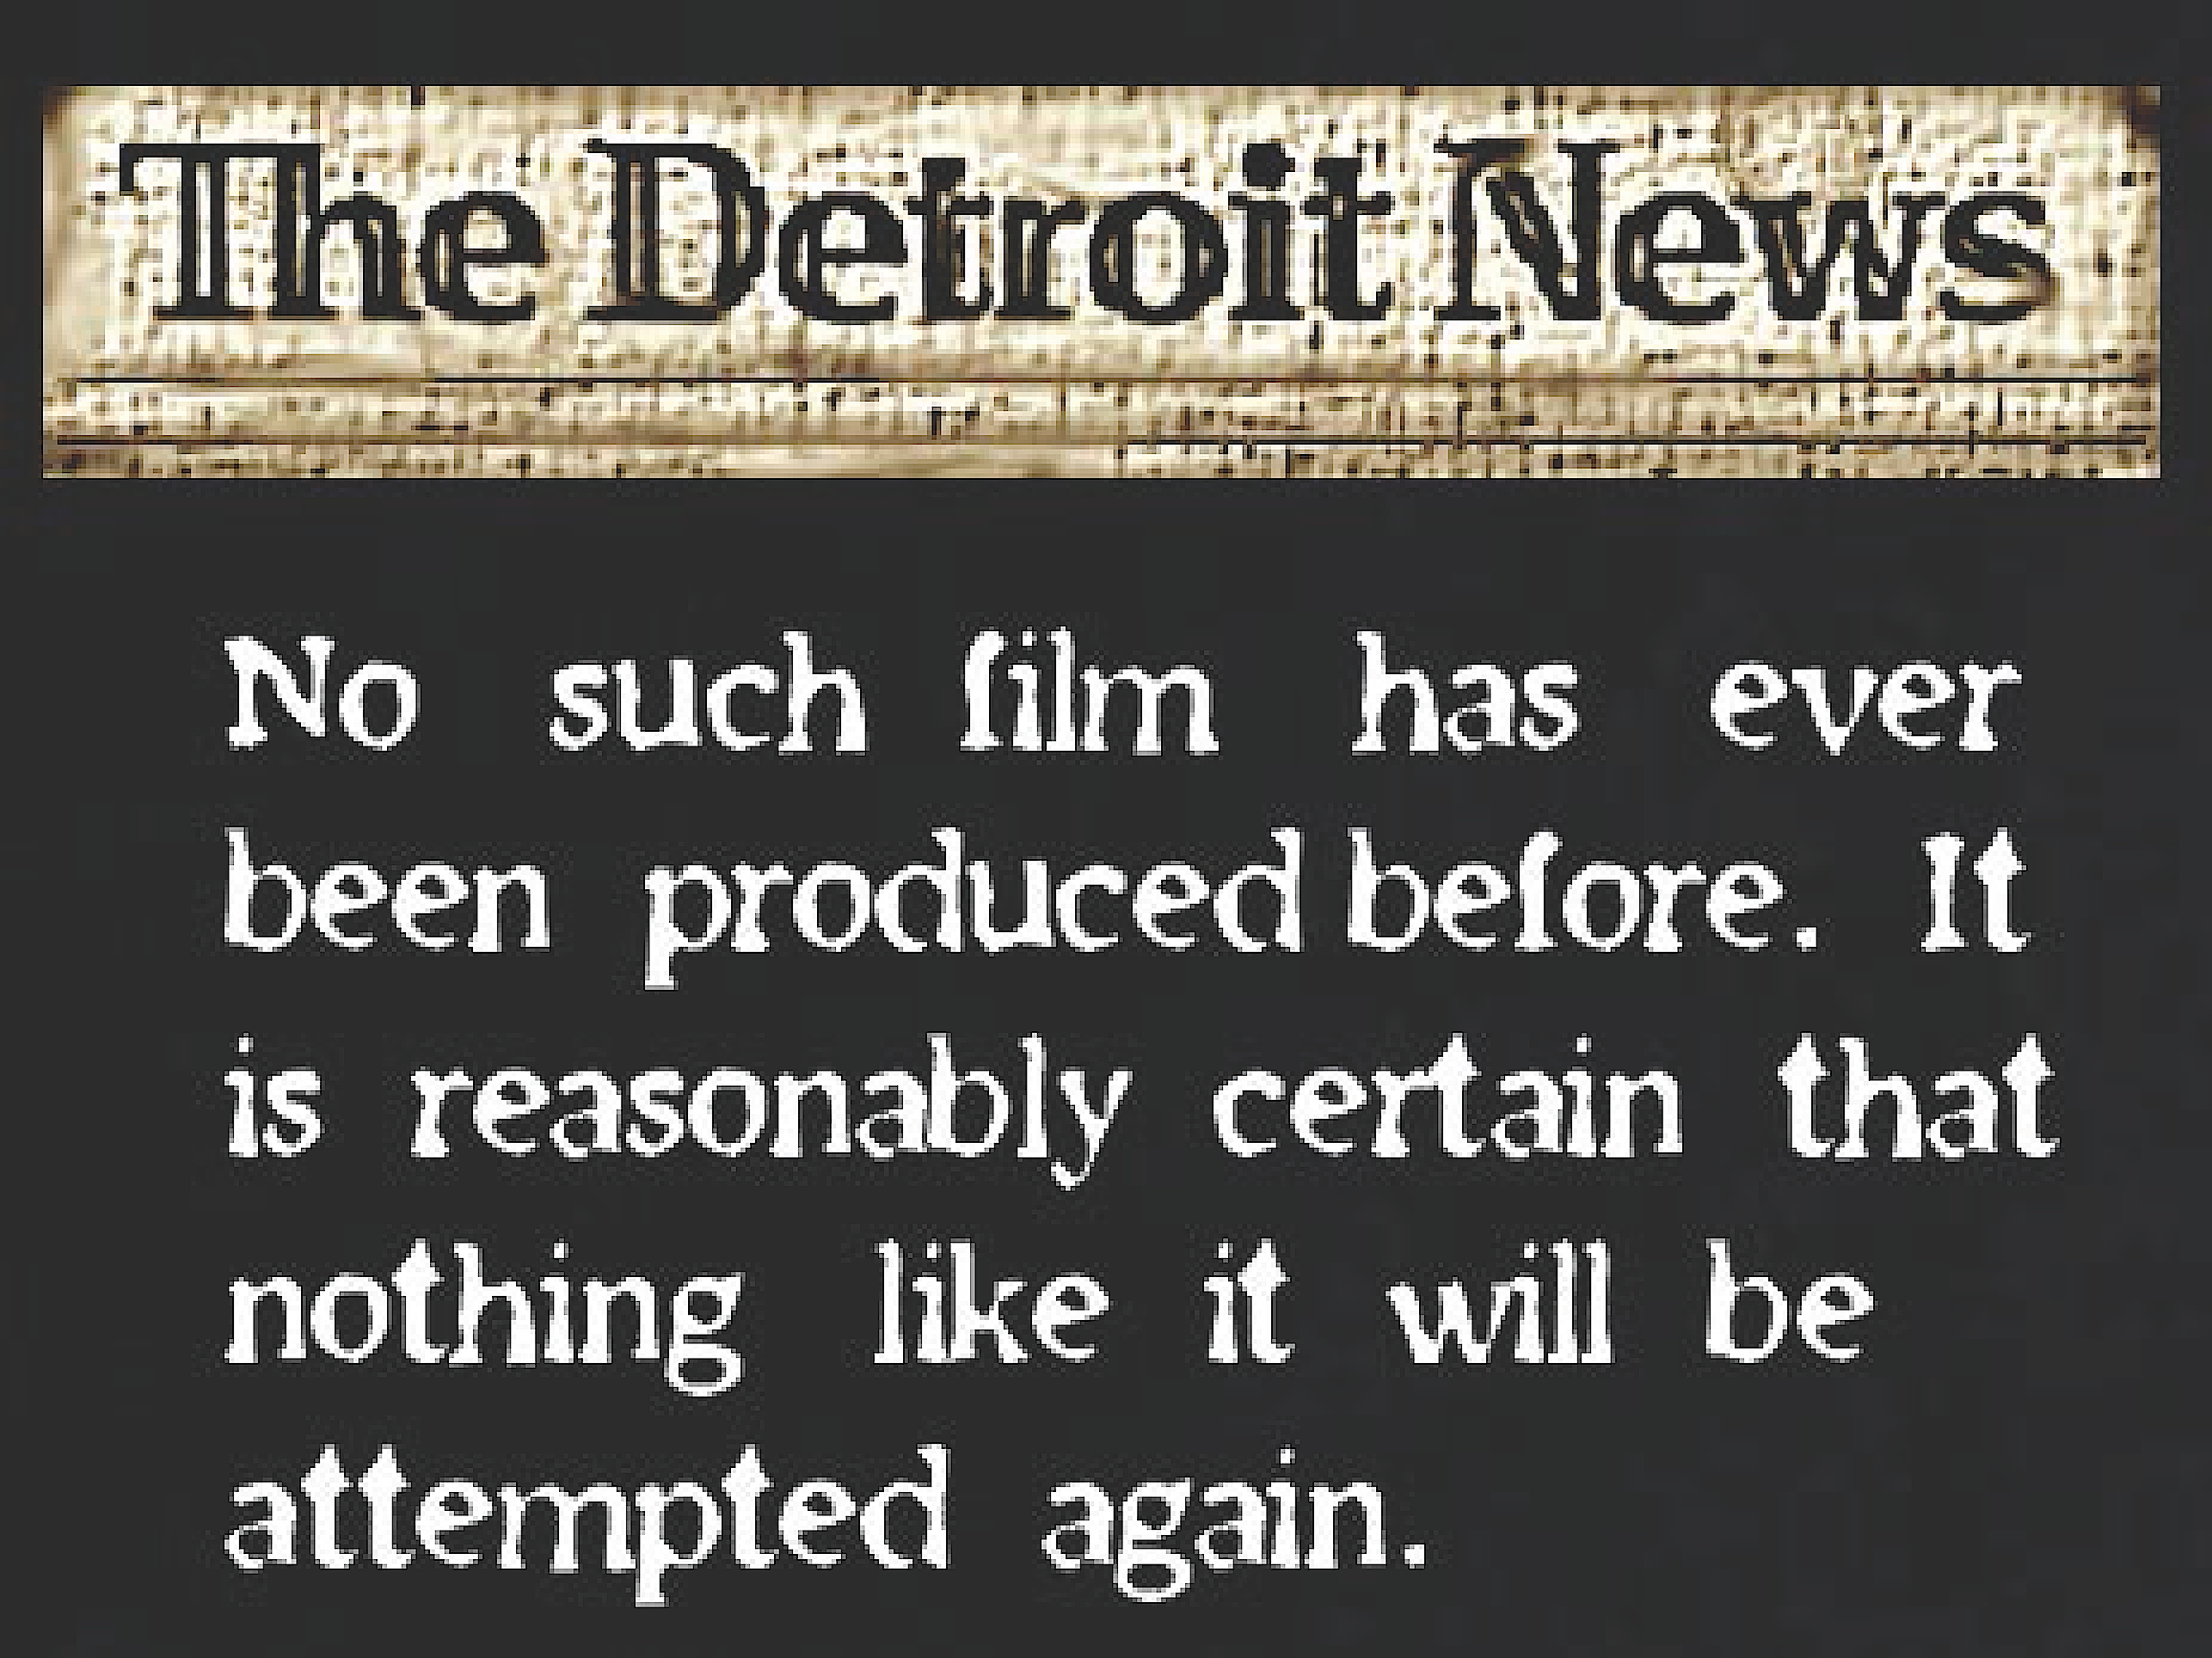 THE DETROIT NEWS REVIEW